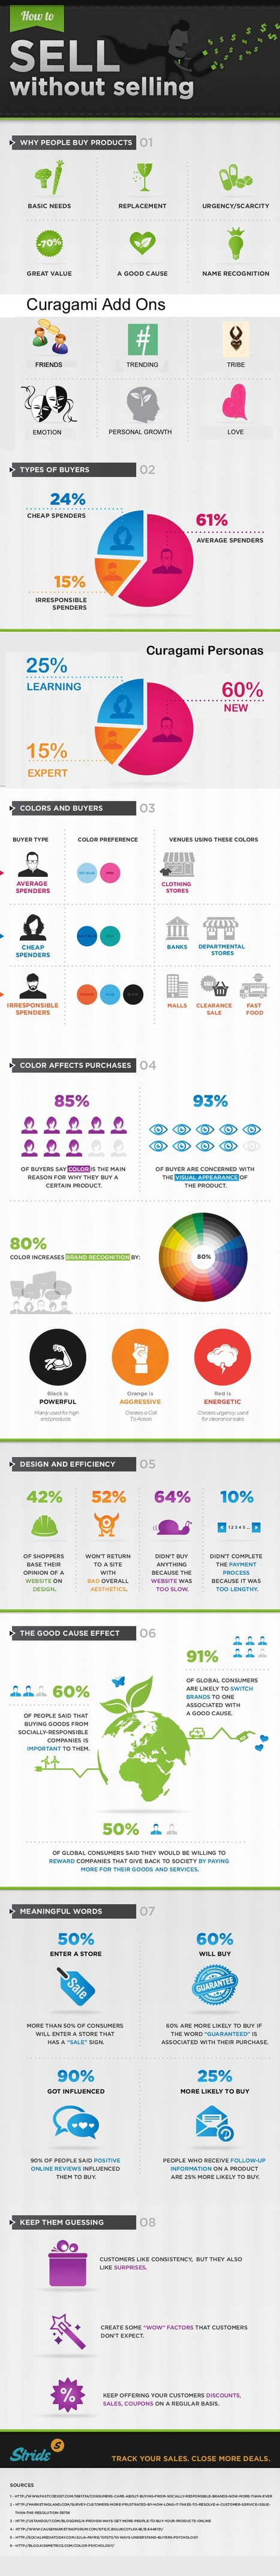 How To Sell Without Selling via @mfacchinetti (Infographic w/ Curagami Add Ons) | Marketing Revolution | Scoop.it